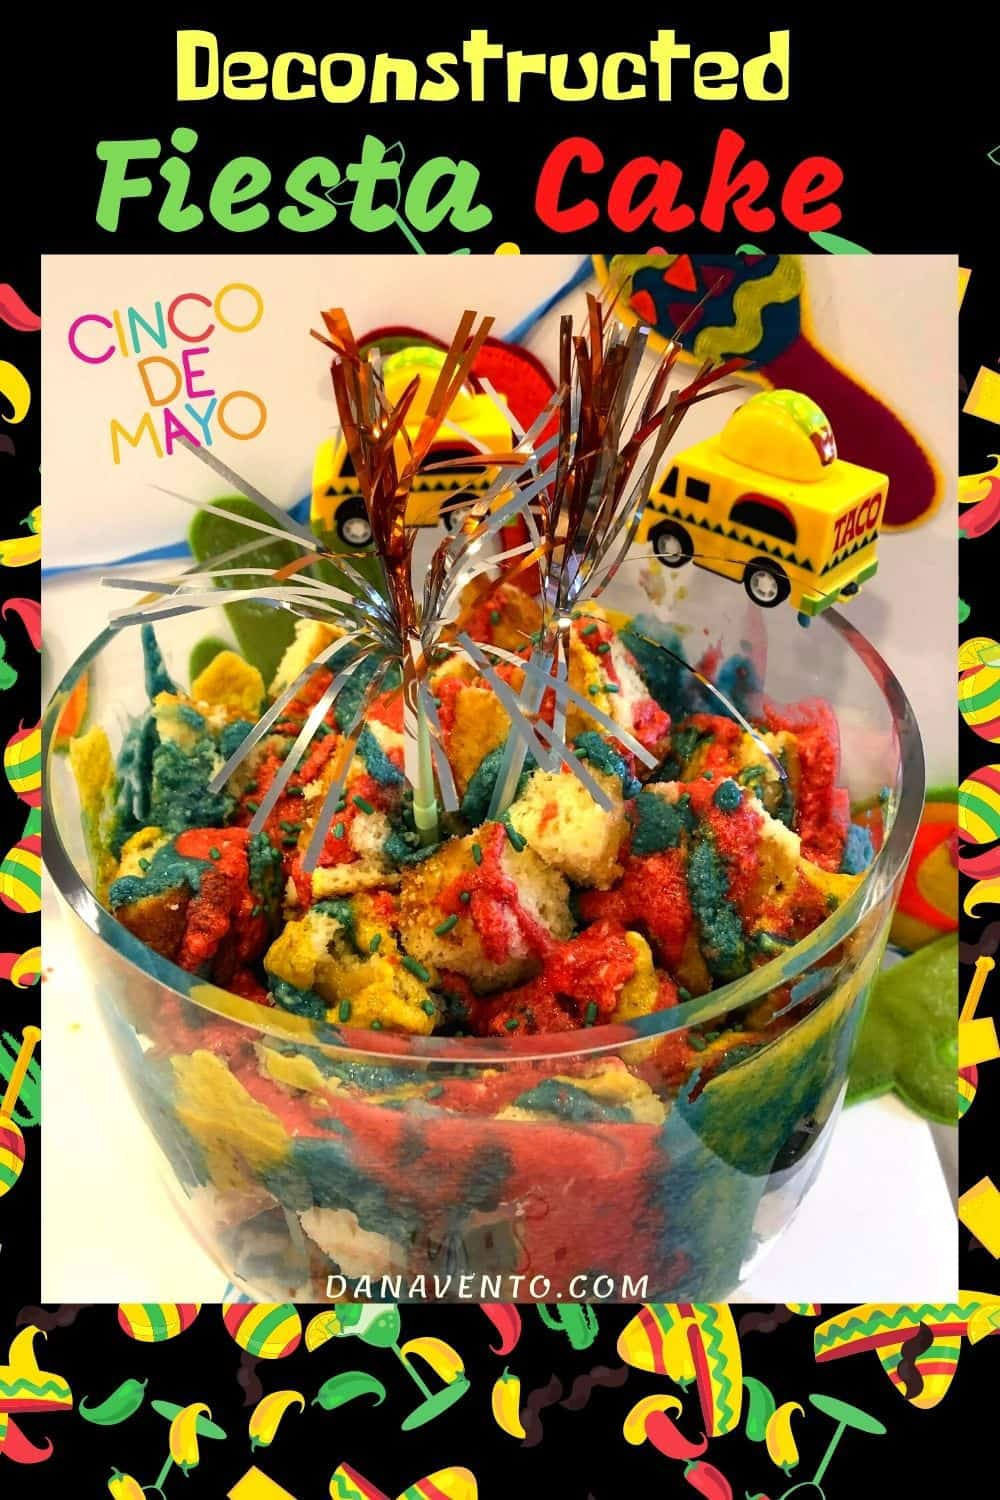 Deconstructed Fiesta Cake for Cinco de Mayo in bowl